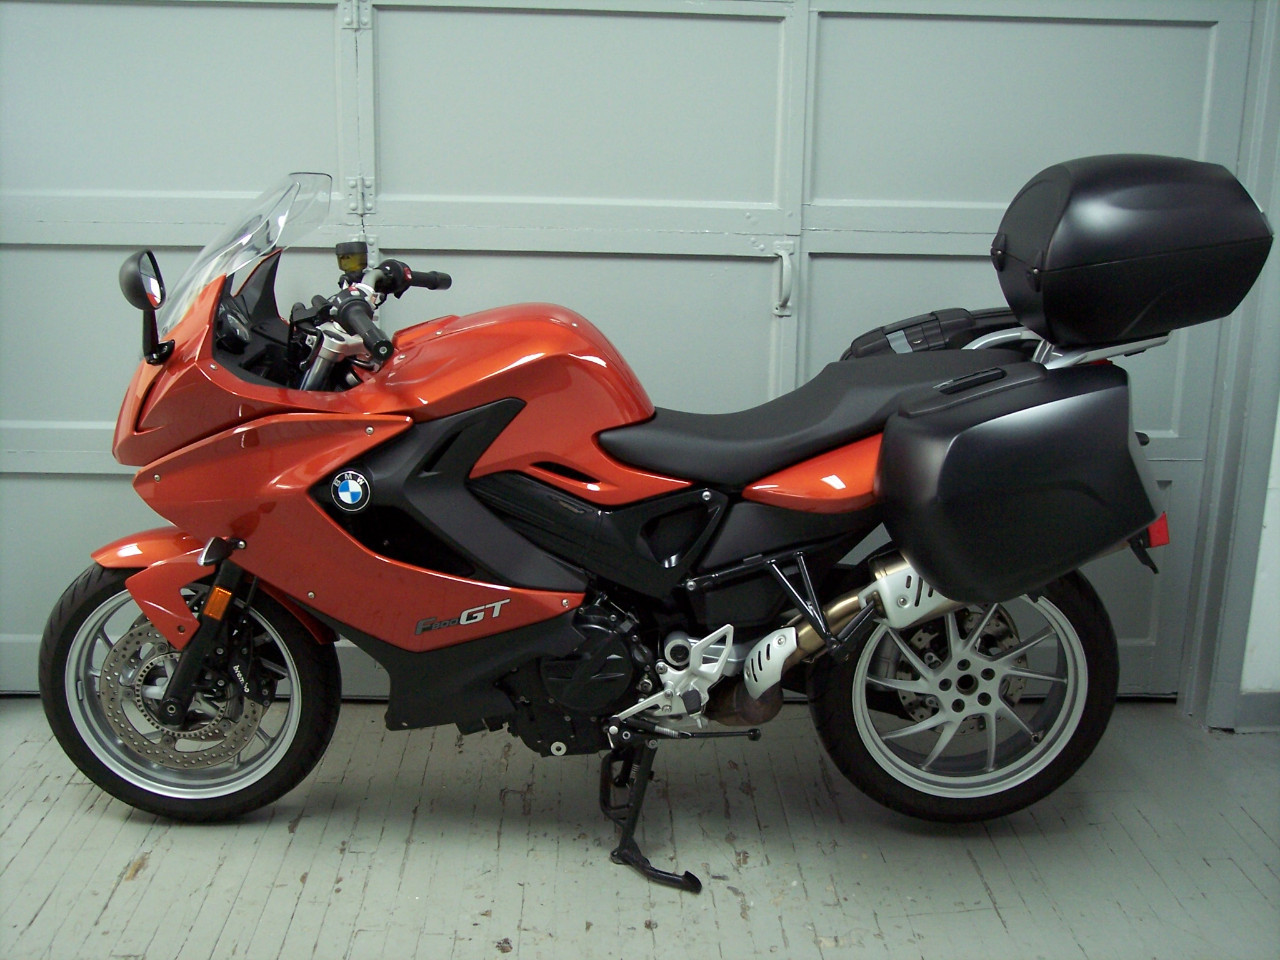 2013 BMW F800GT Touring Motorcycle From Barrington, IL ...